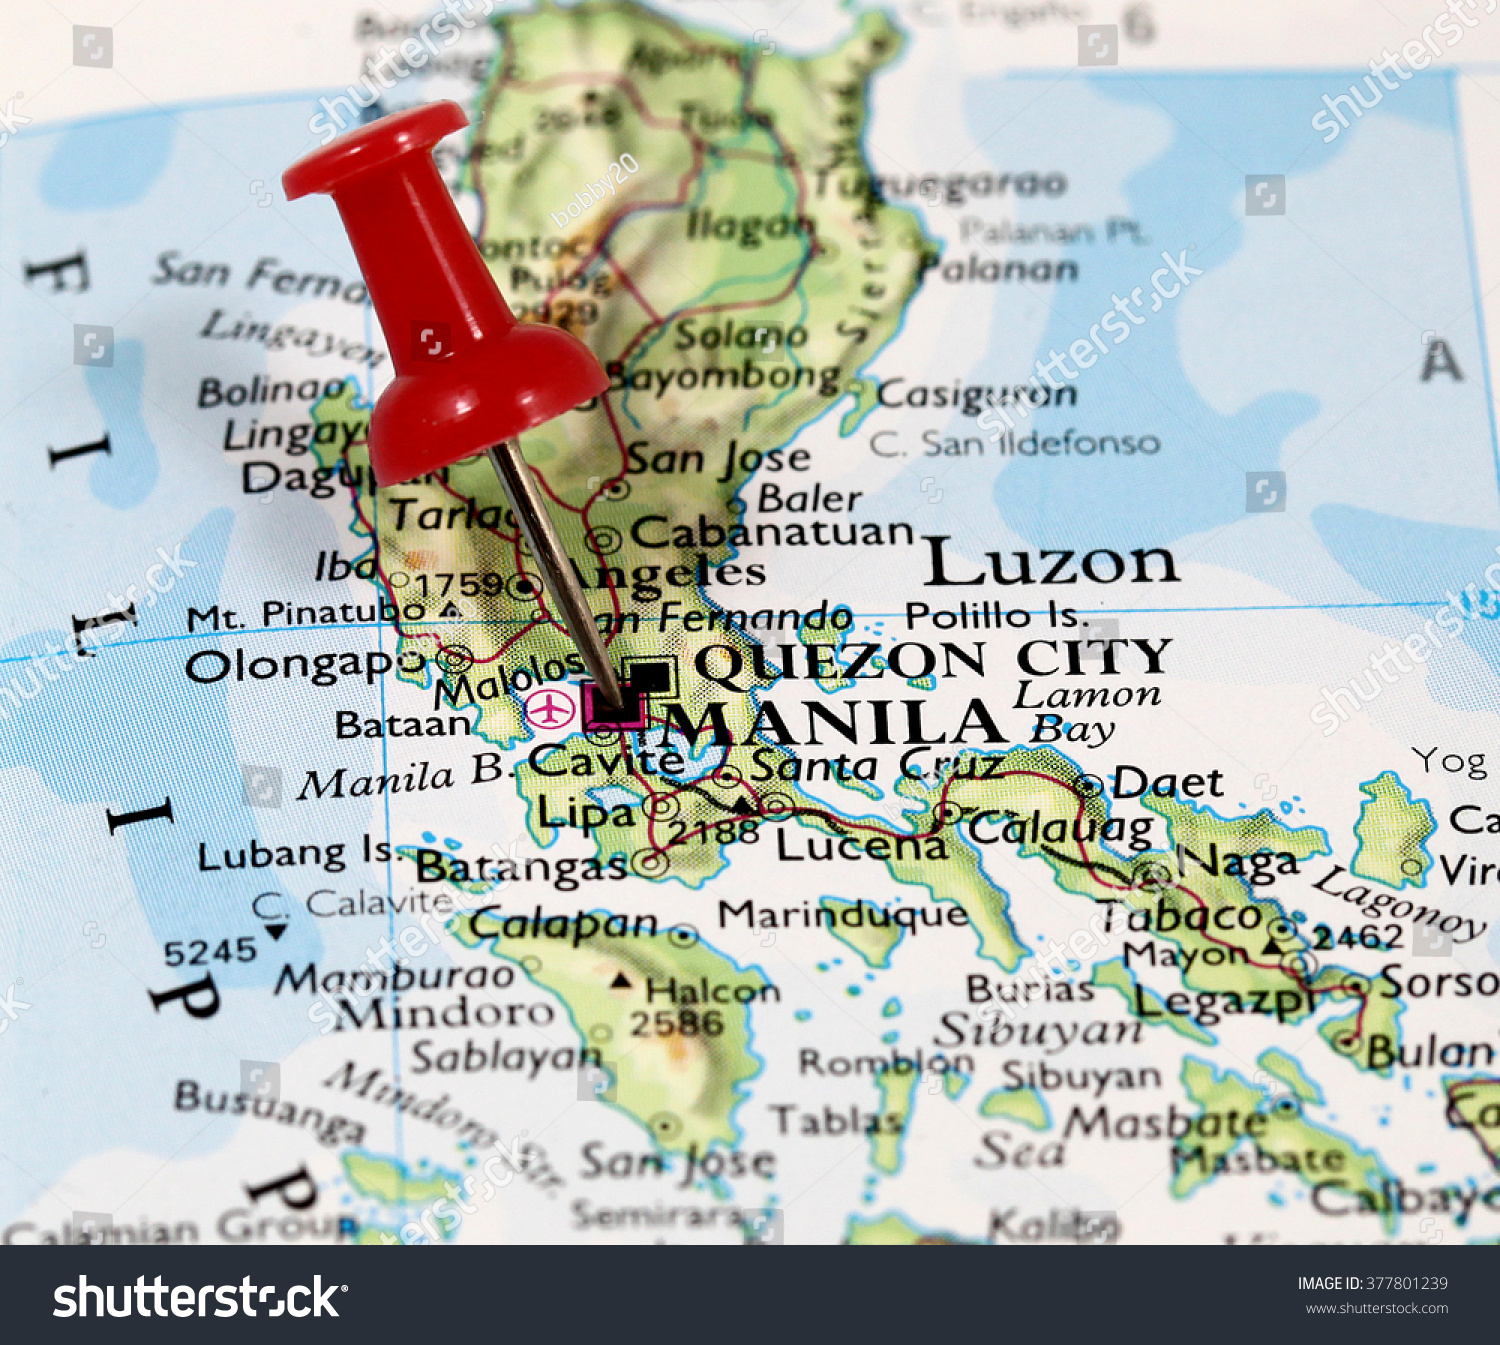 Map Pin Point Manila On Philippines Stock Photo Edit Now 377801239